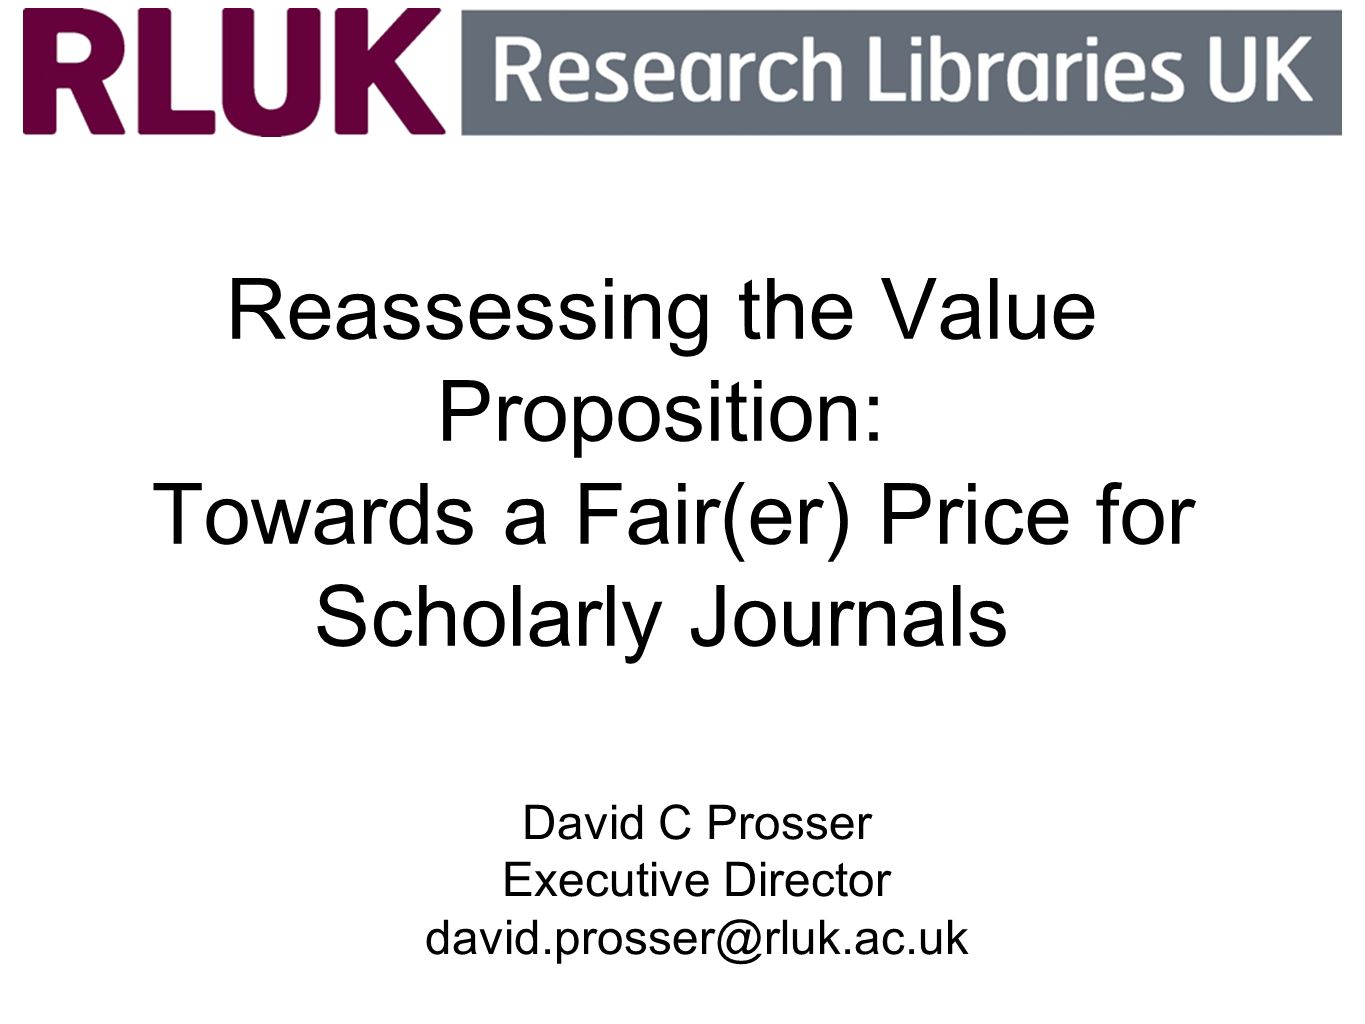 Reassessing the Value Proposition: Towards a Fair(er) Price for Scholarly Journals David C Prosser Executive Director david.prosser@rluk.ac.uk